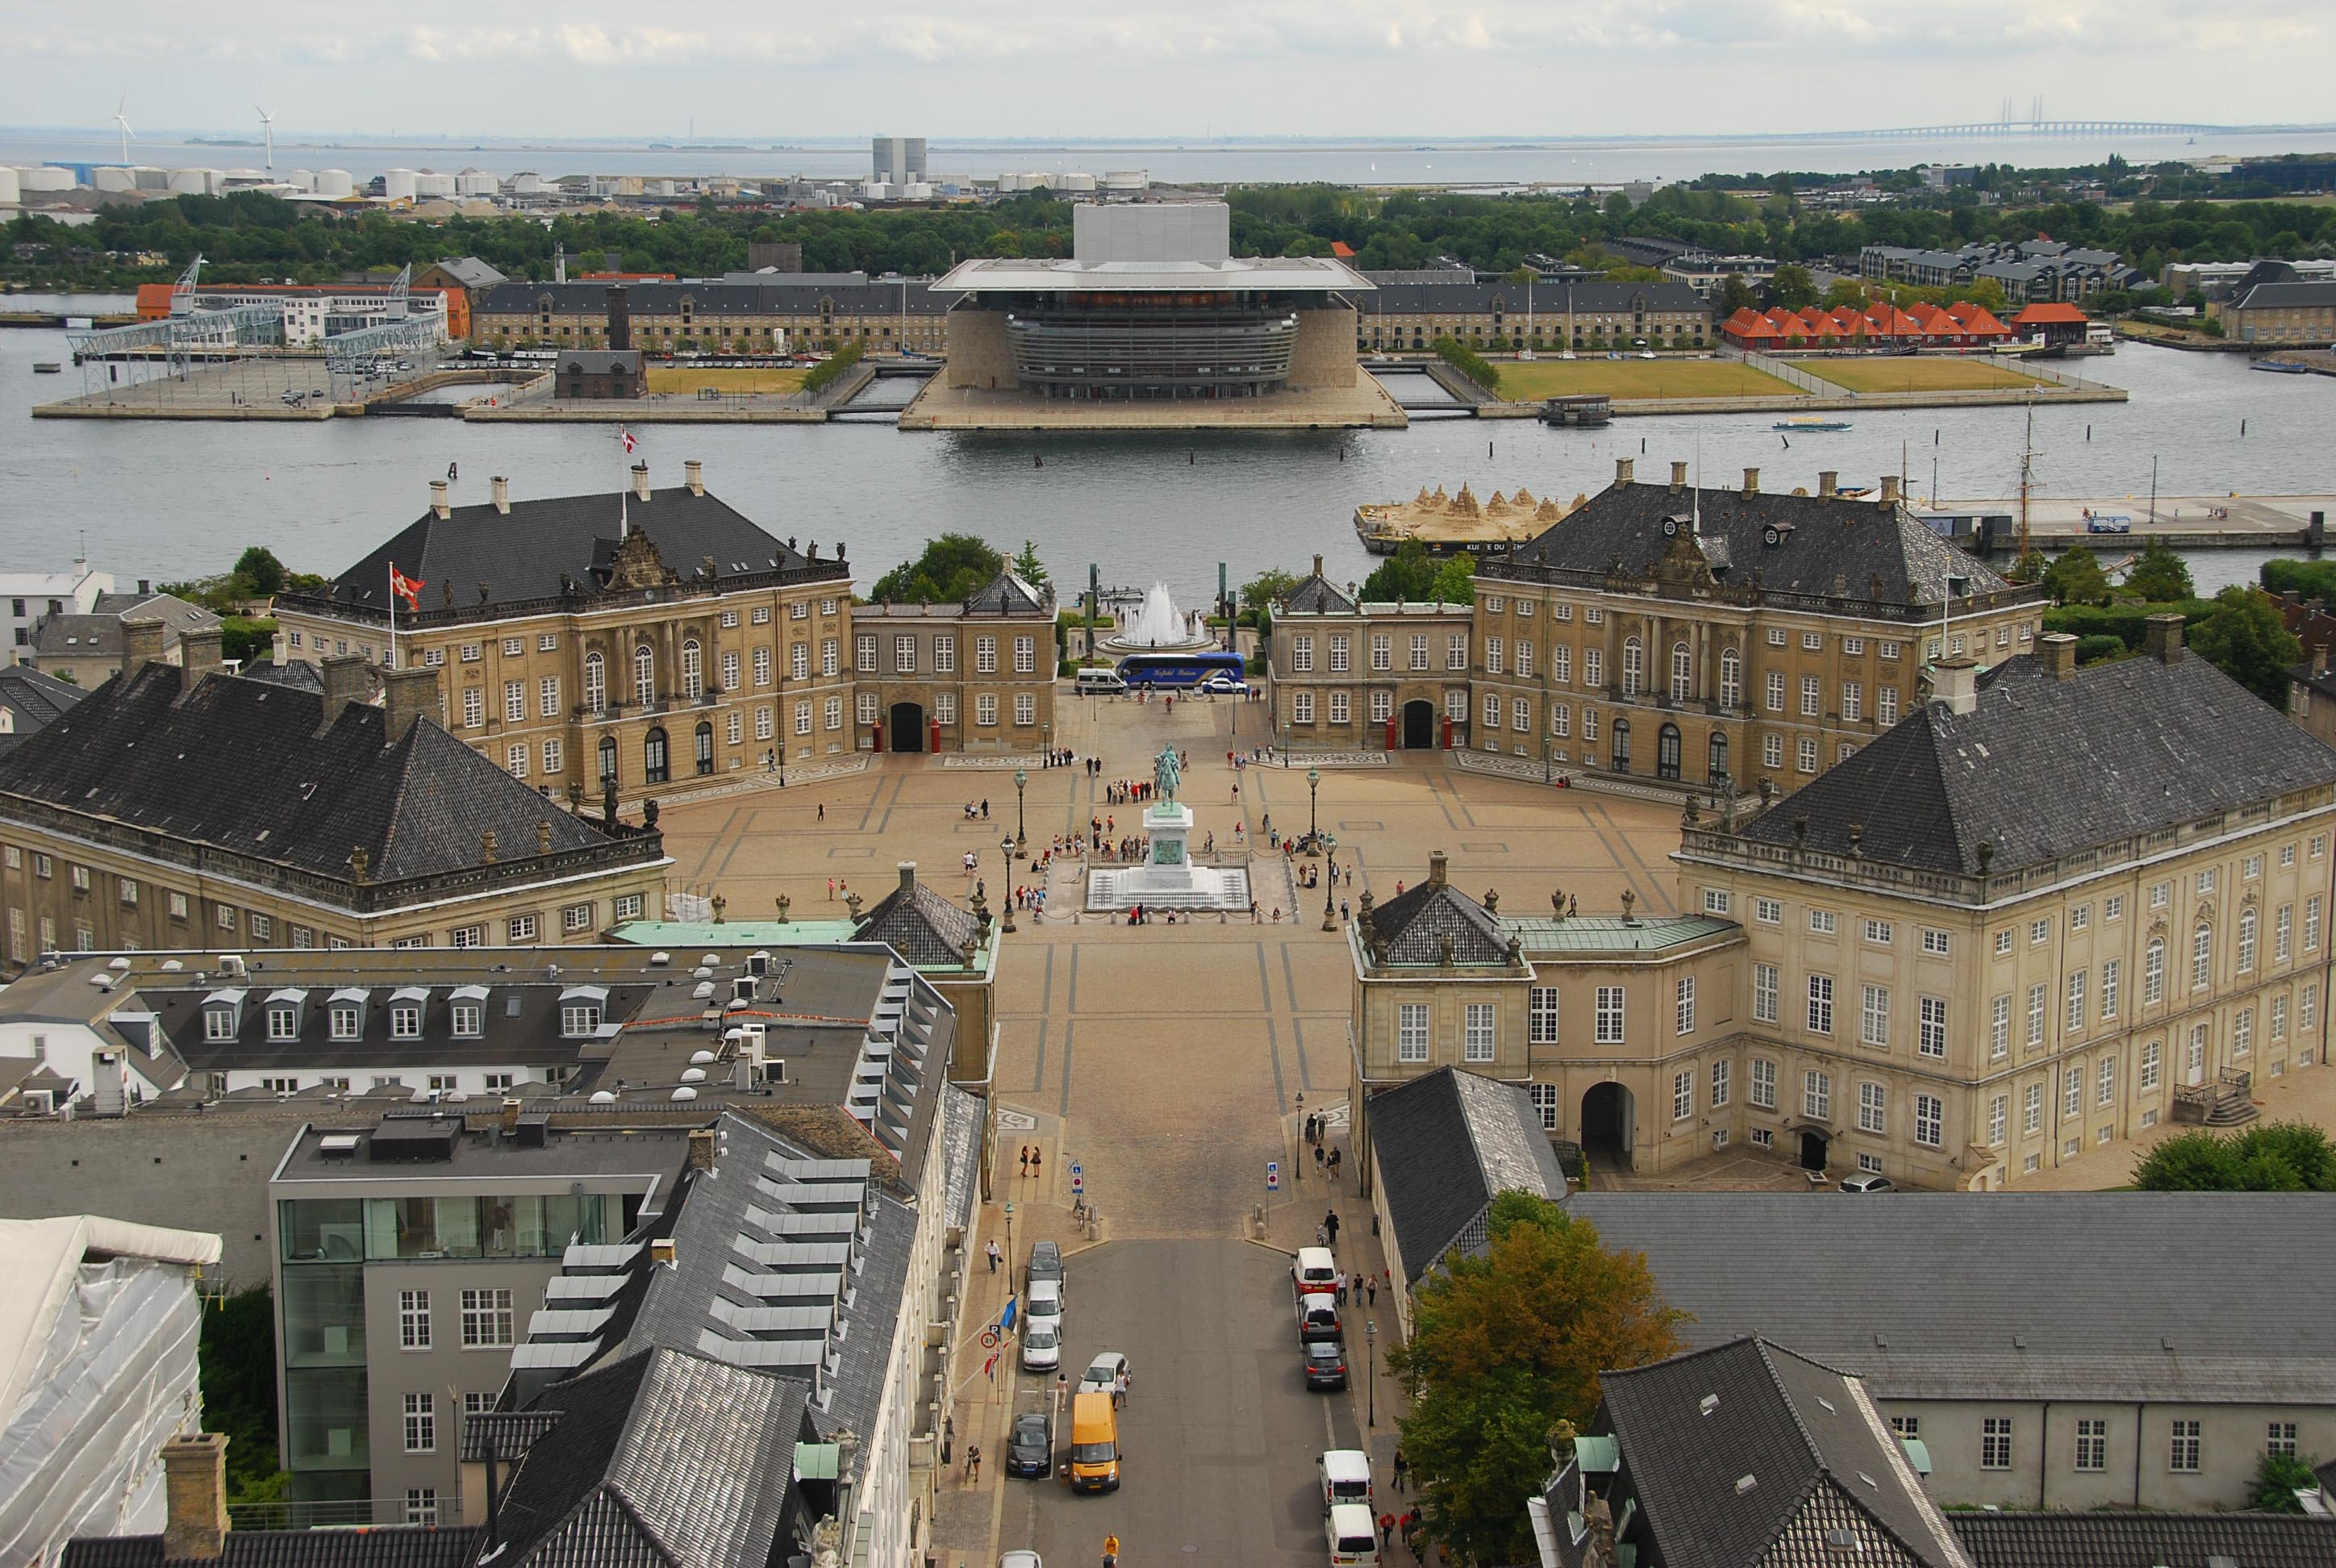 Amalienborg_Palace_-_aerial_view.jpg